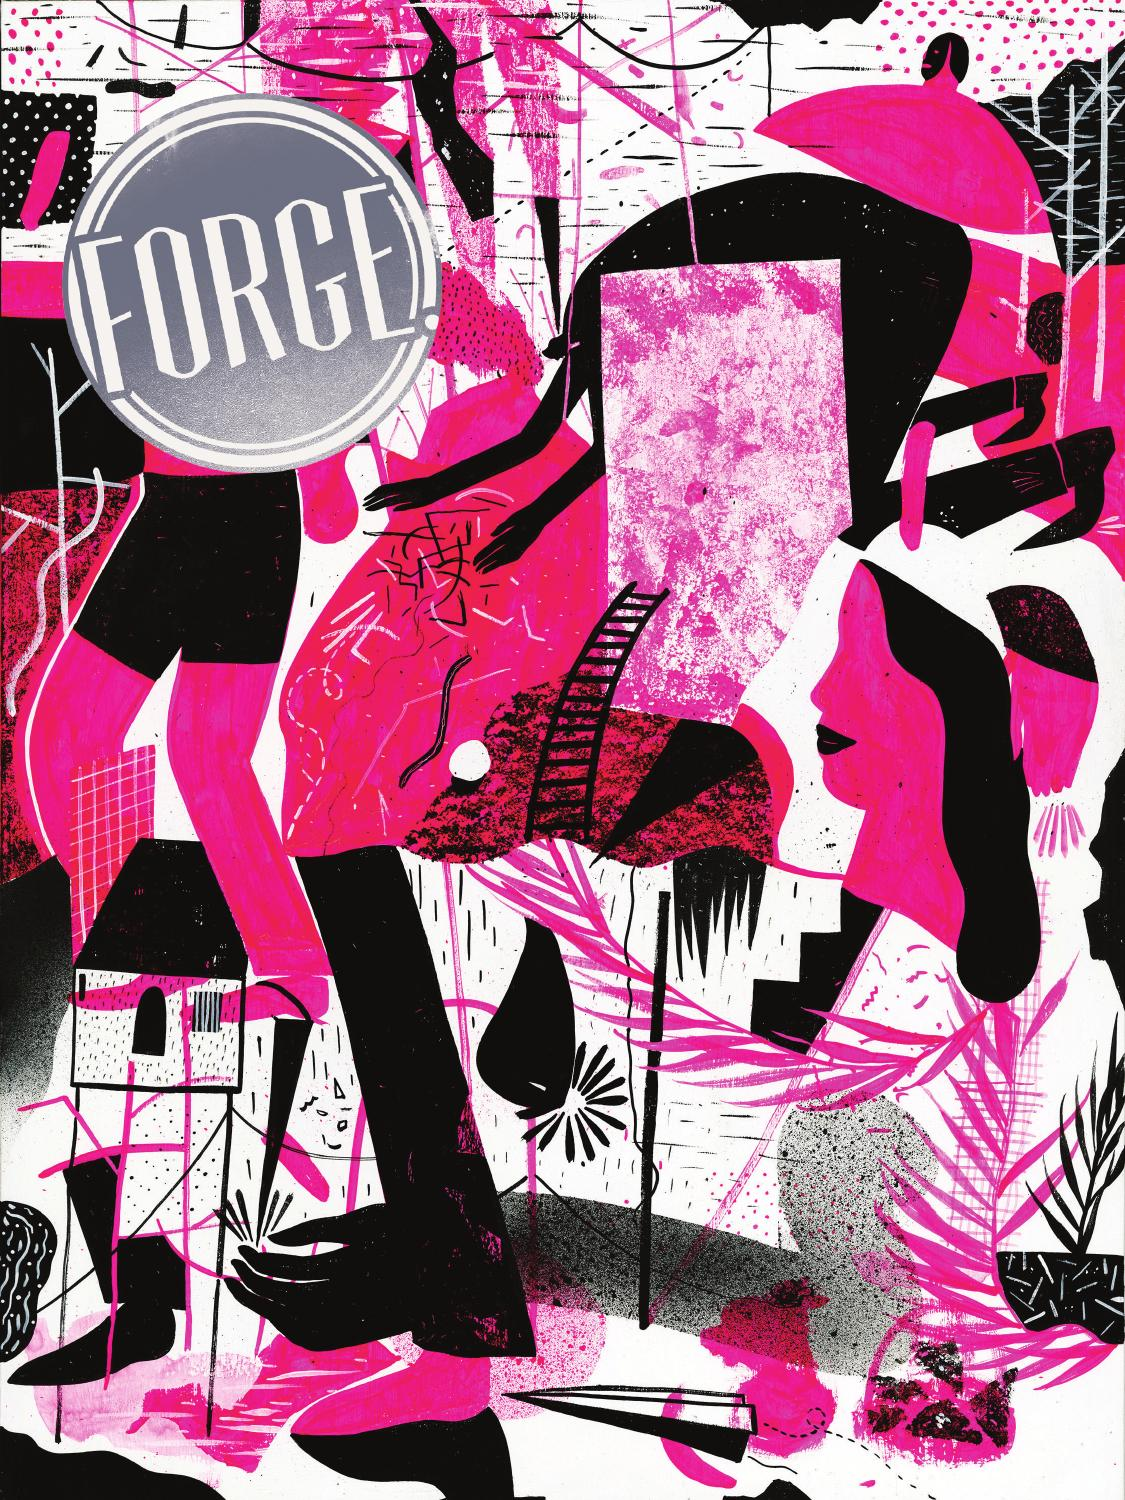 FORGE. Issue 4: Sentimental by FORGE. Art Magazine - issuu